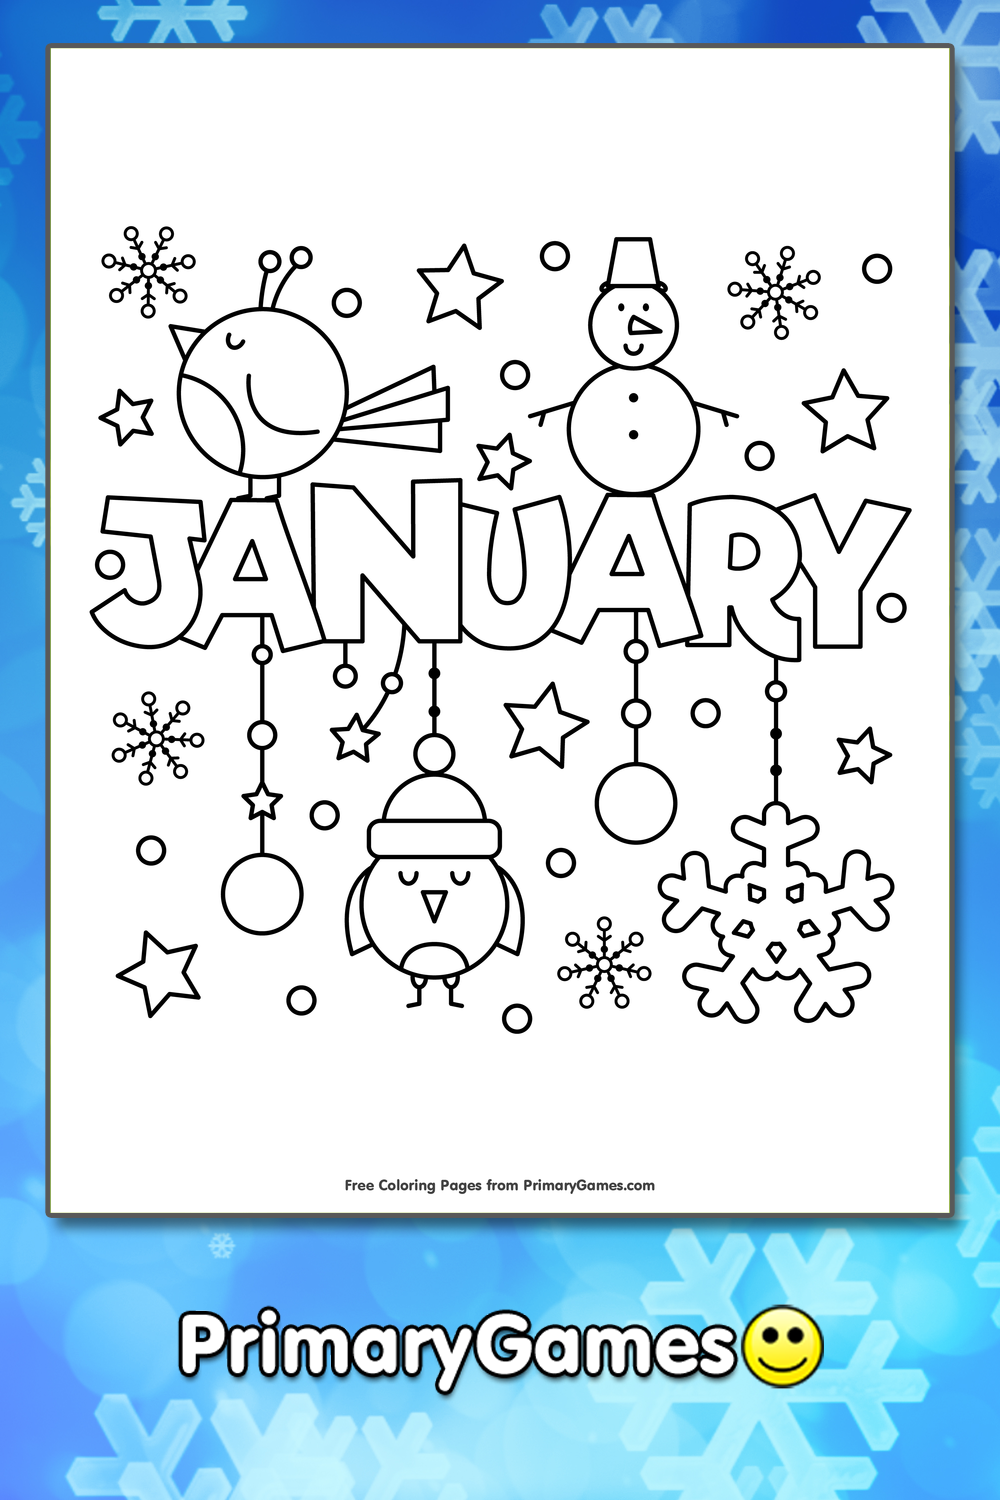 Free Printable January Coloring Pages for Kids Online | 1500x1000